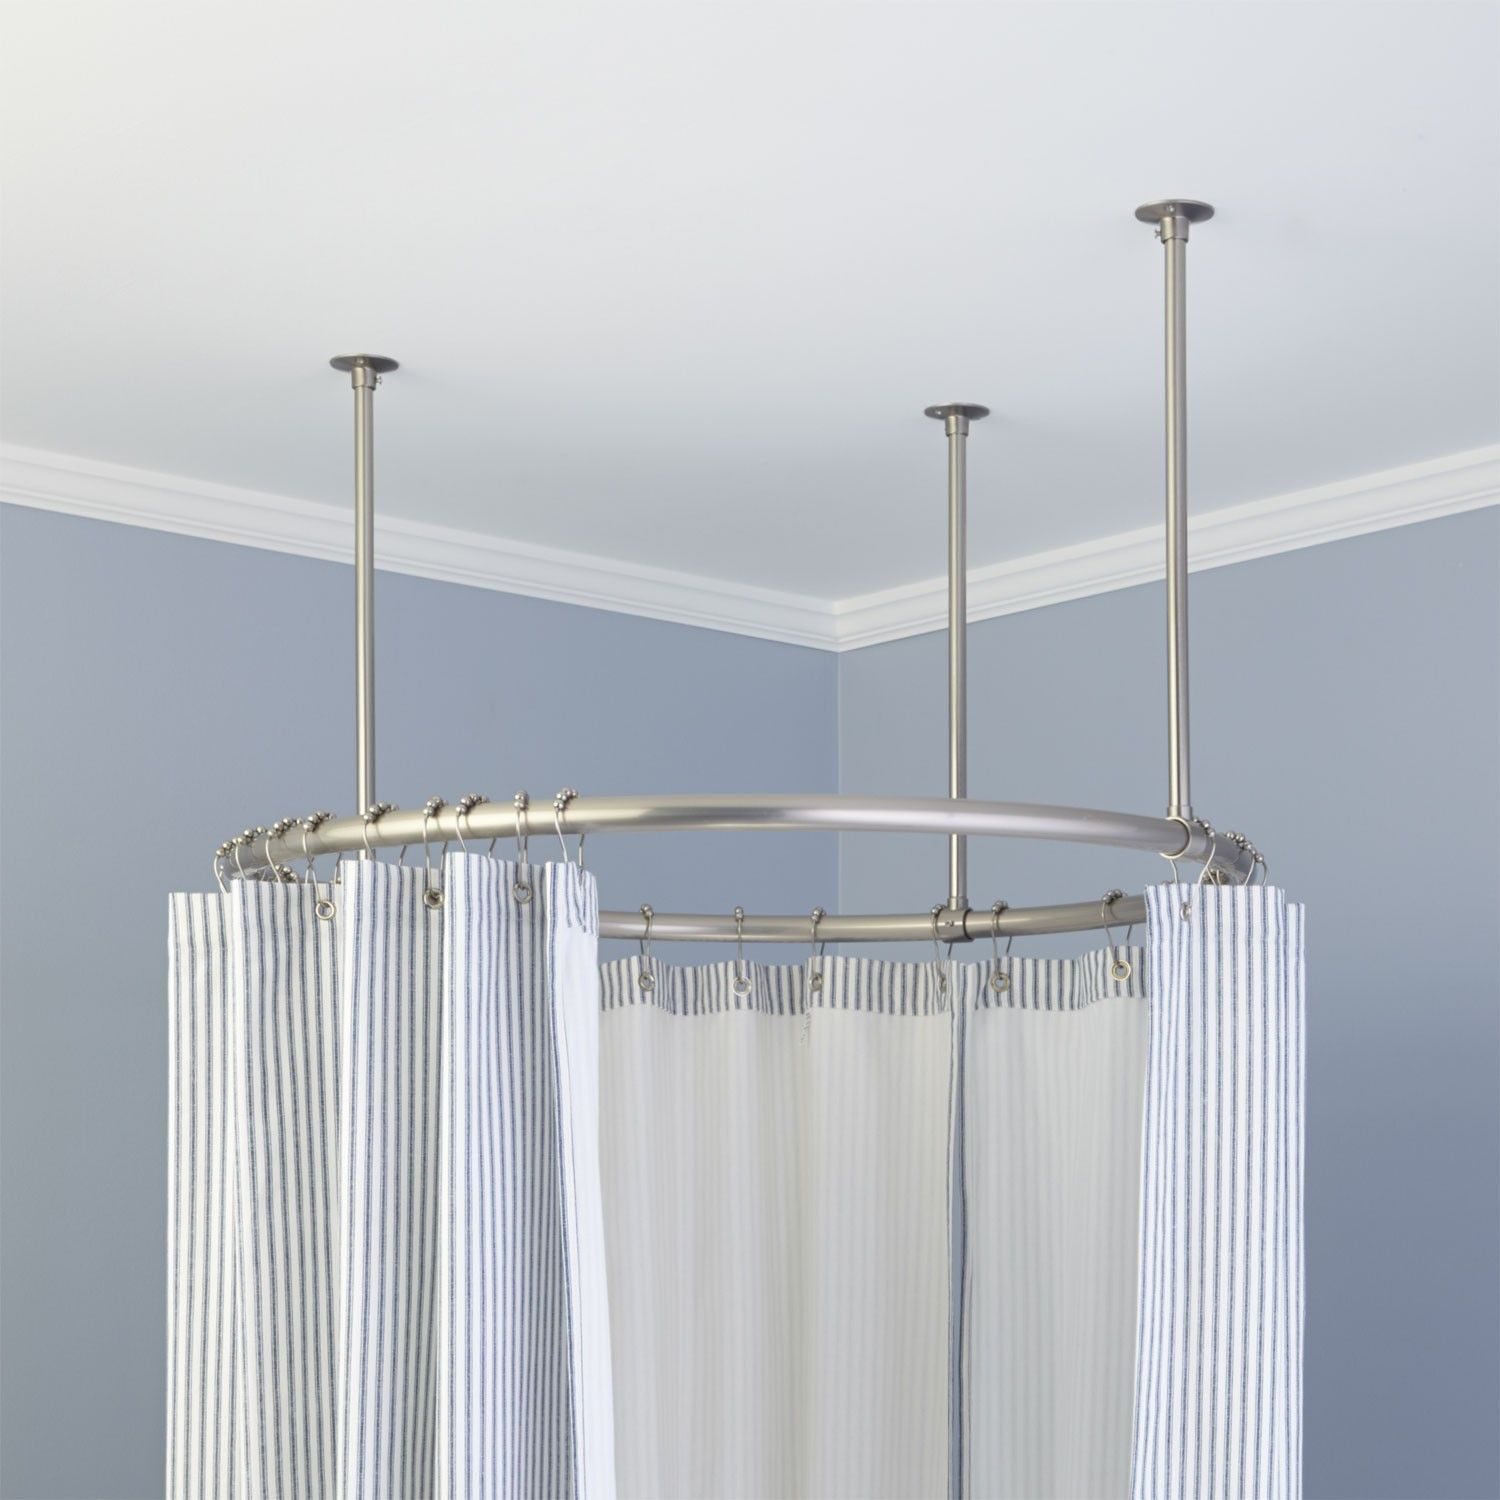 Circular Shower Curtain Rods For Rvs Yahoo Image Search Results Round Shower Curtain Rod Primitive Bathrooms Shower Curtain Rods